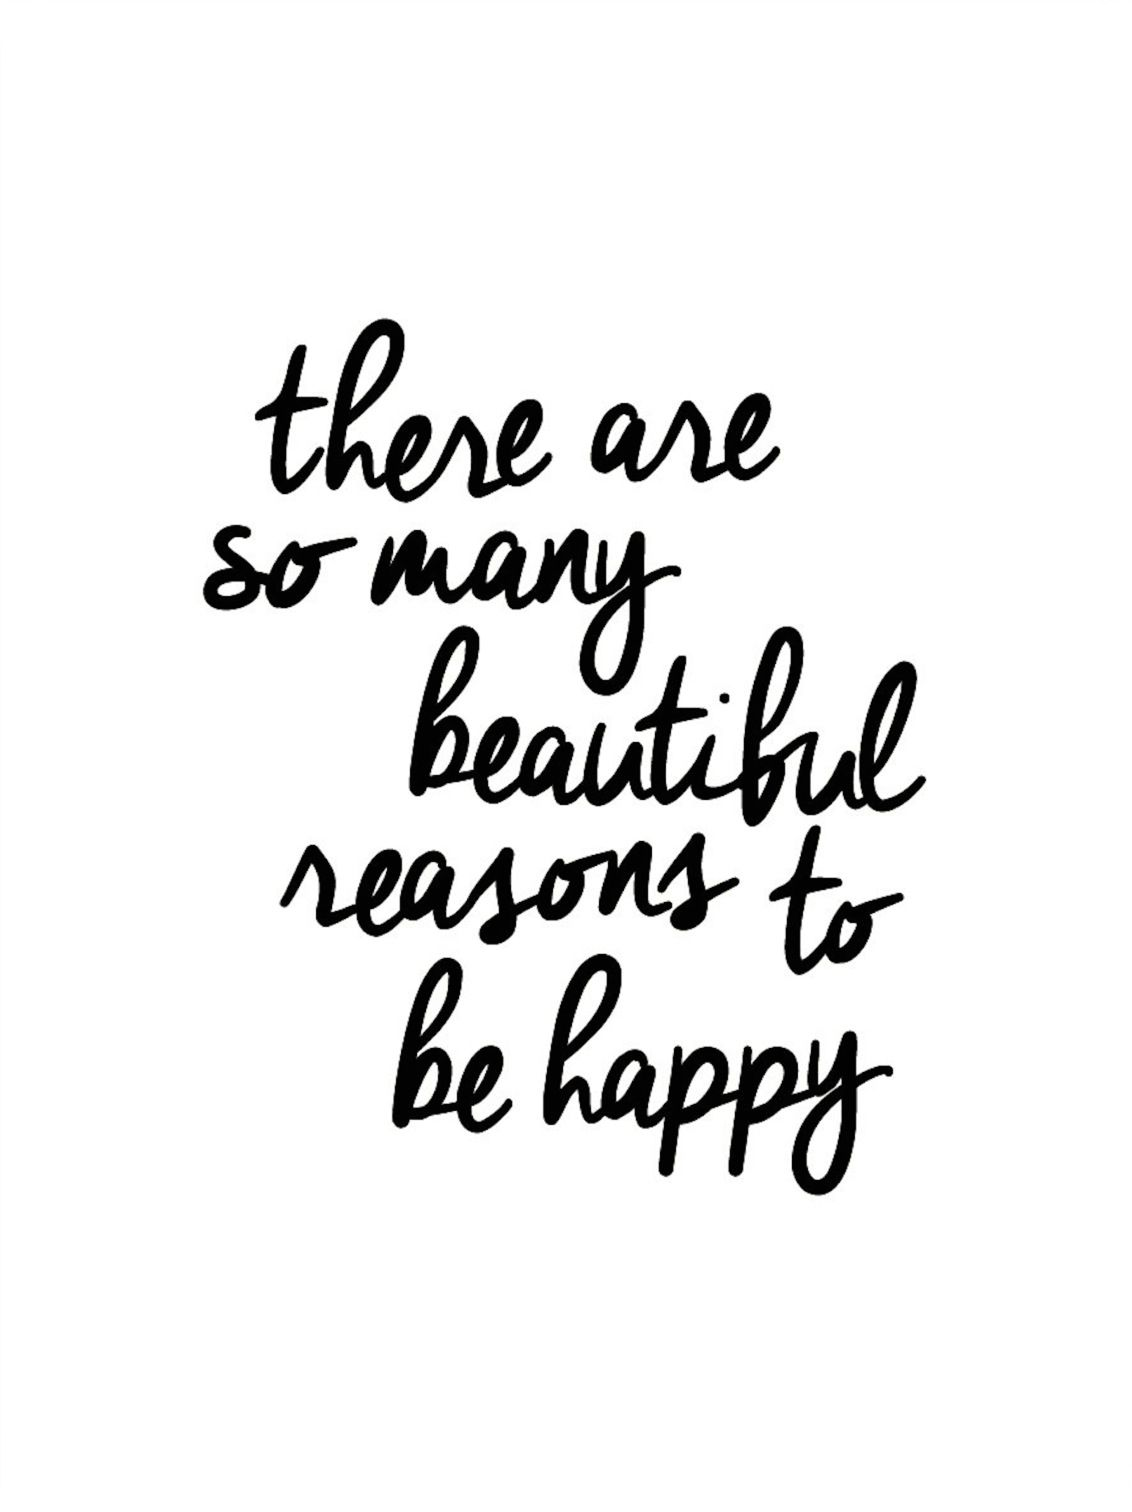 Quotes About Being Happy Alluring Themotivatedtype On Etsy  Quotes Pinterest  Inspirational .